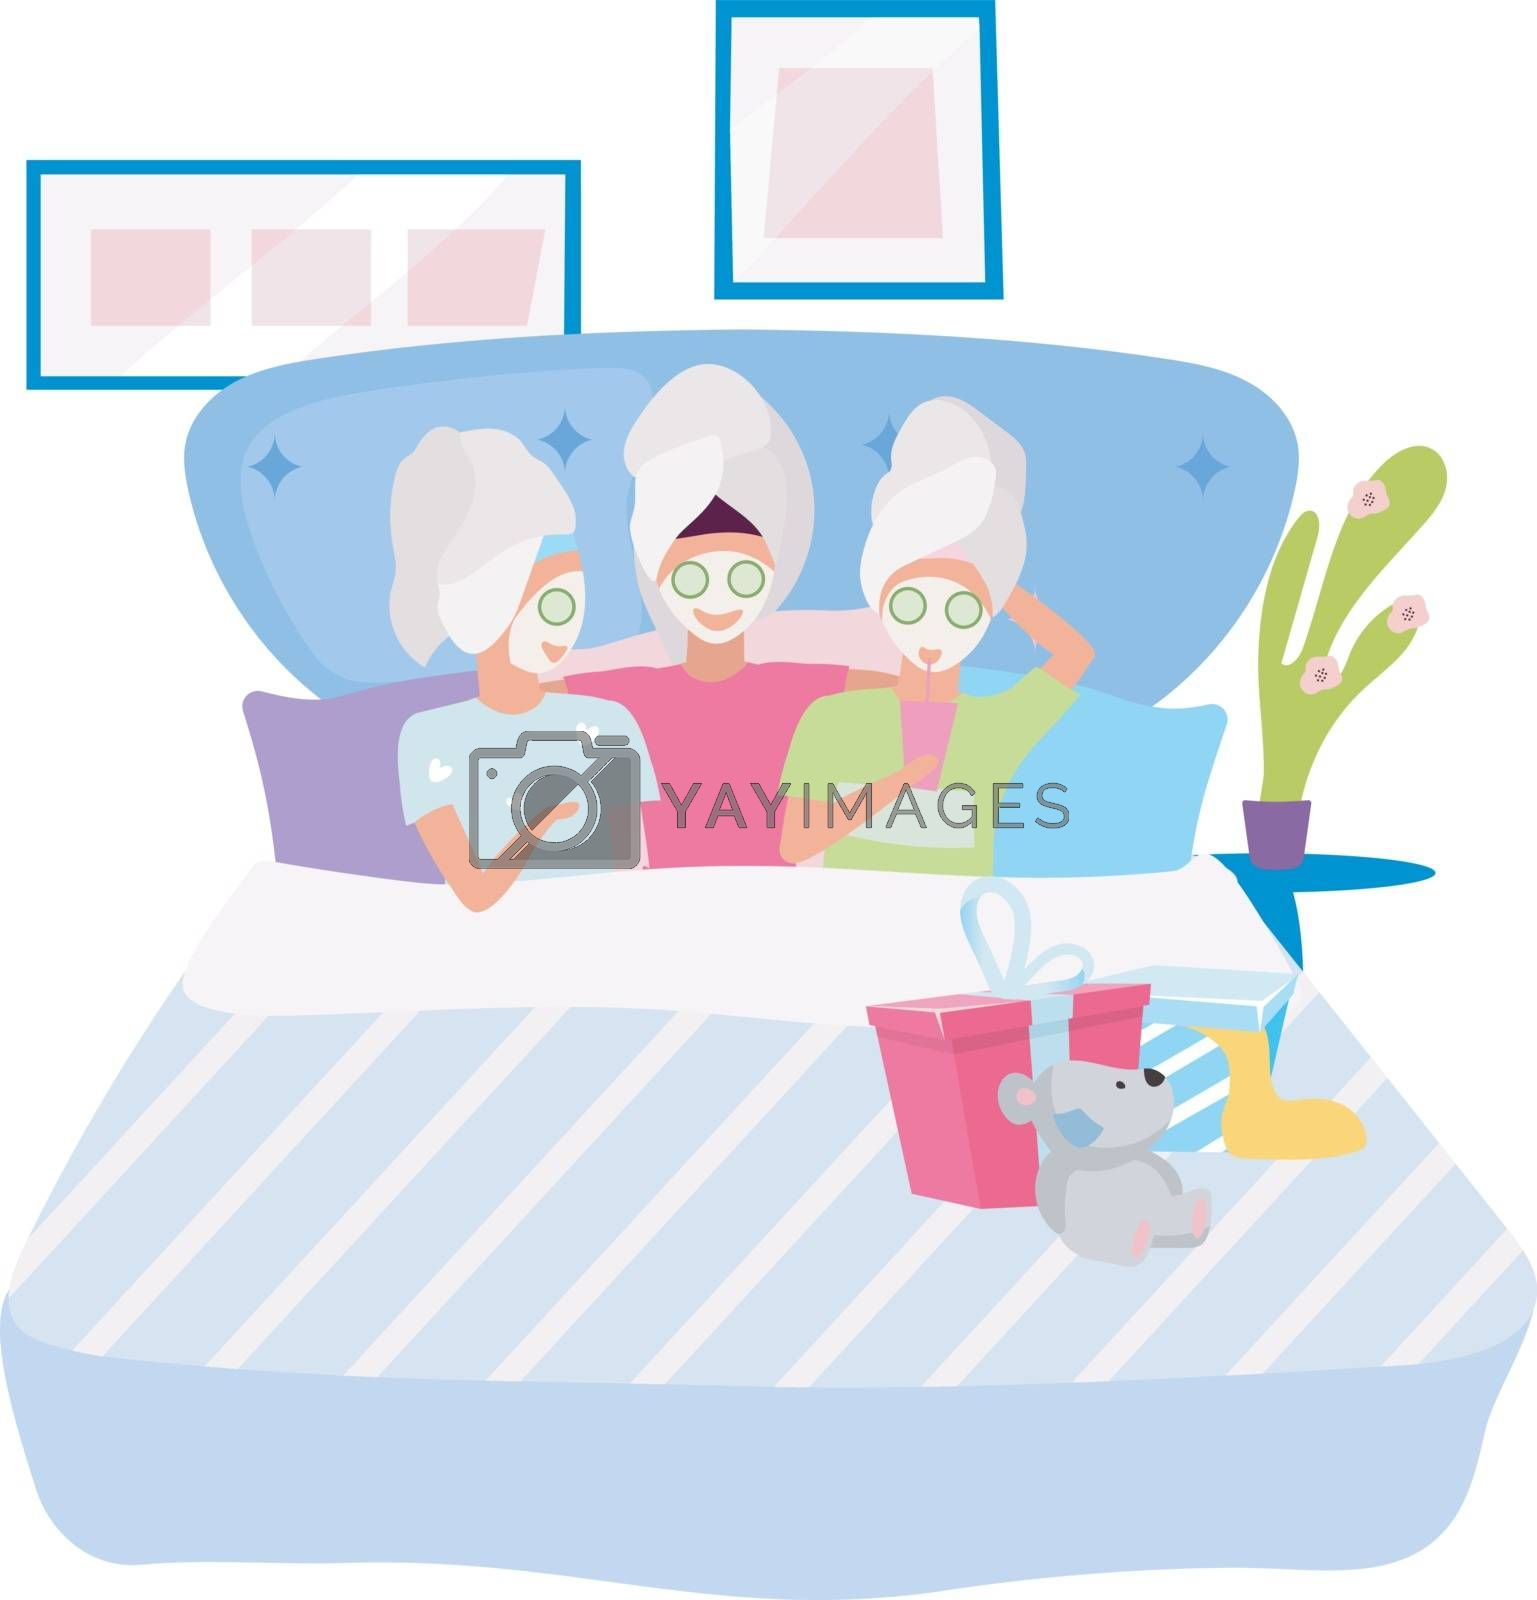 Spa party flat vector illustration. Girlfriend applying facial masks cartoon characters. Sleepover, slumber night party. Friends spending beauty time together, pastime. Female friendship concept by ntl